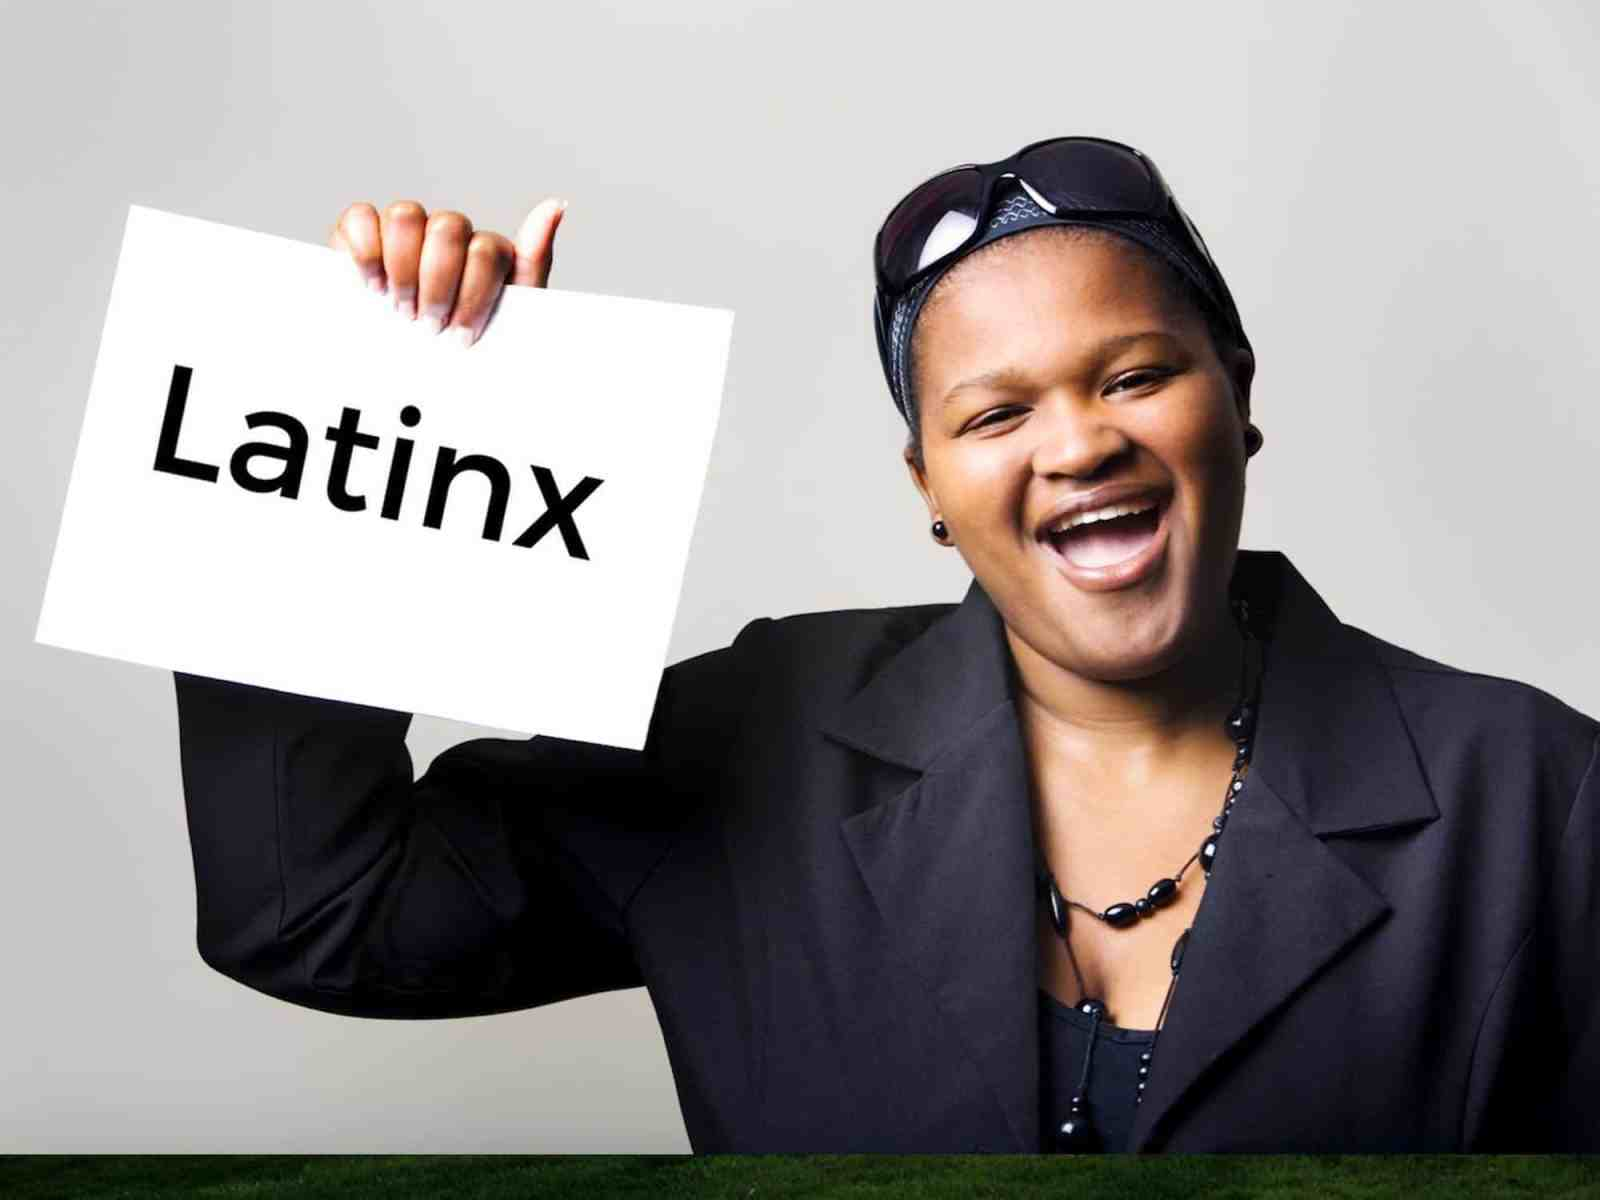 Being Latinx is an identity that a lot of people have taken up, however it is not something that should be defined as an ethnicity.